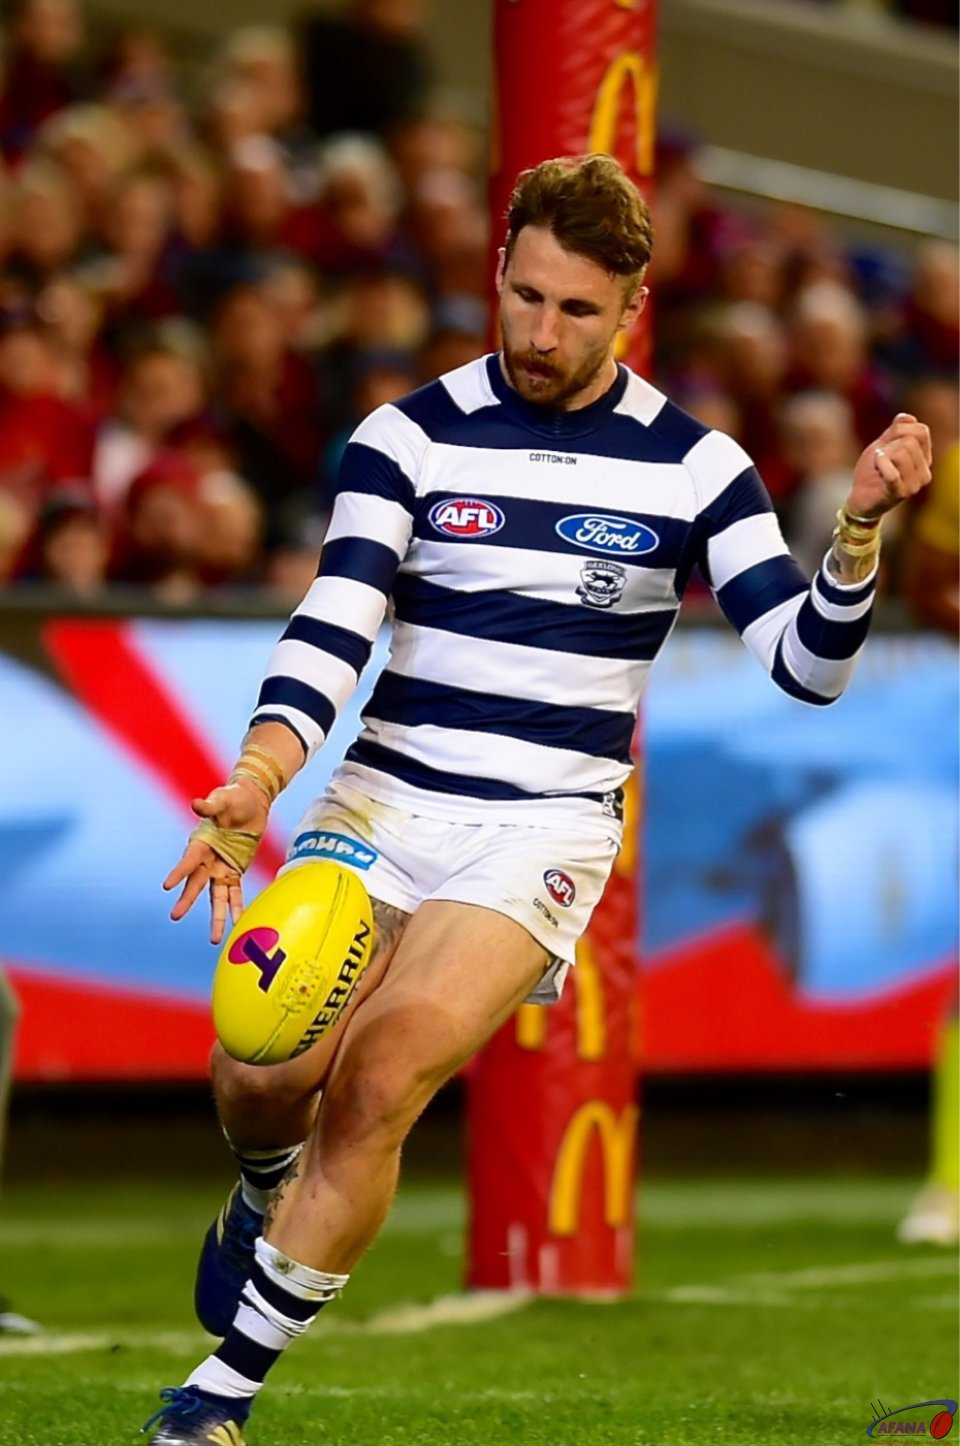 Zach Tuohy kicks out